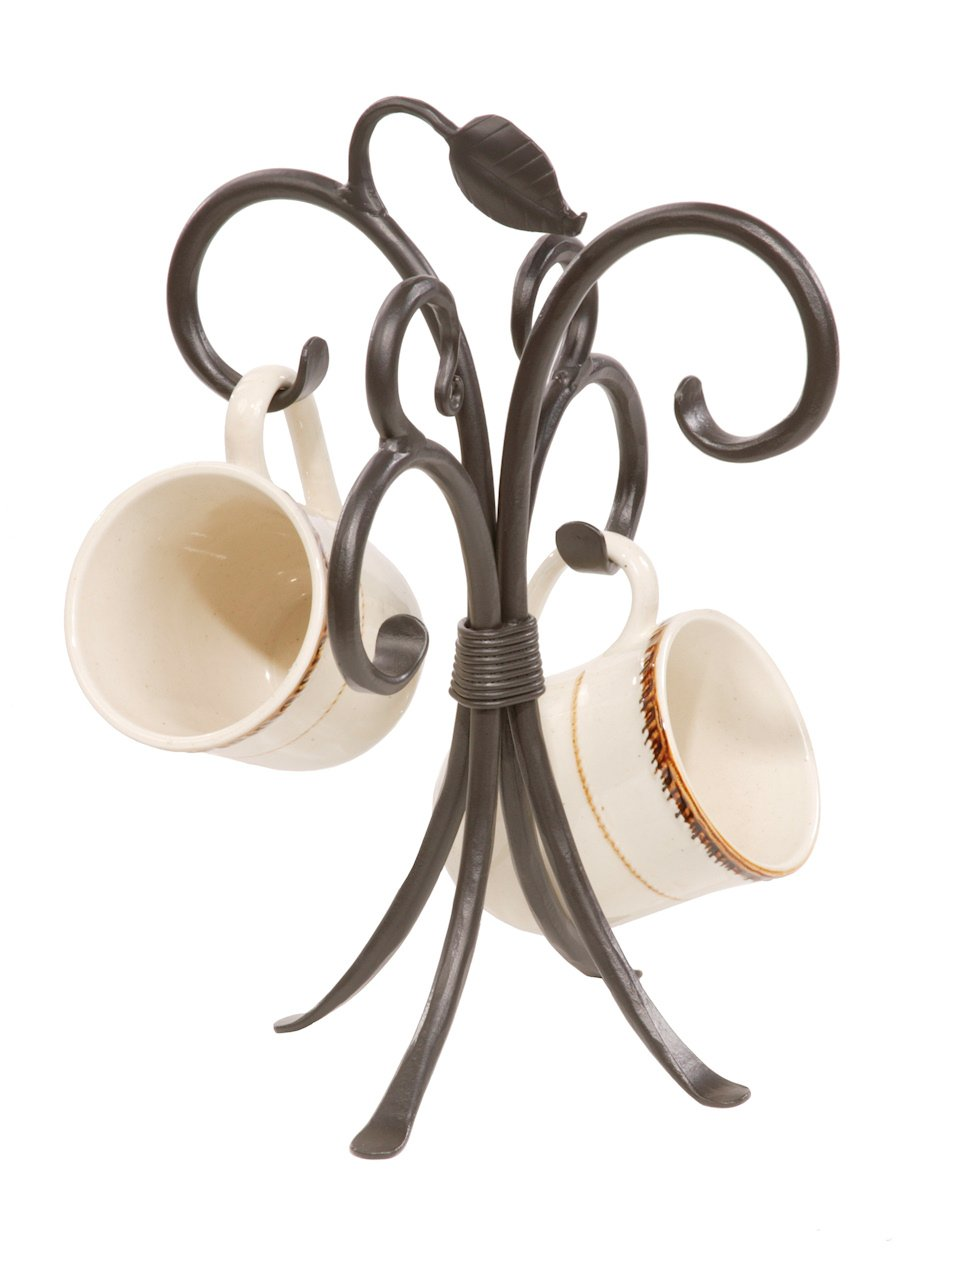 Stone Country Ironworks 205751-OG-142822-O-759572 Sassafras Mug Rack Woodland, brown